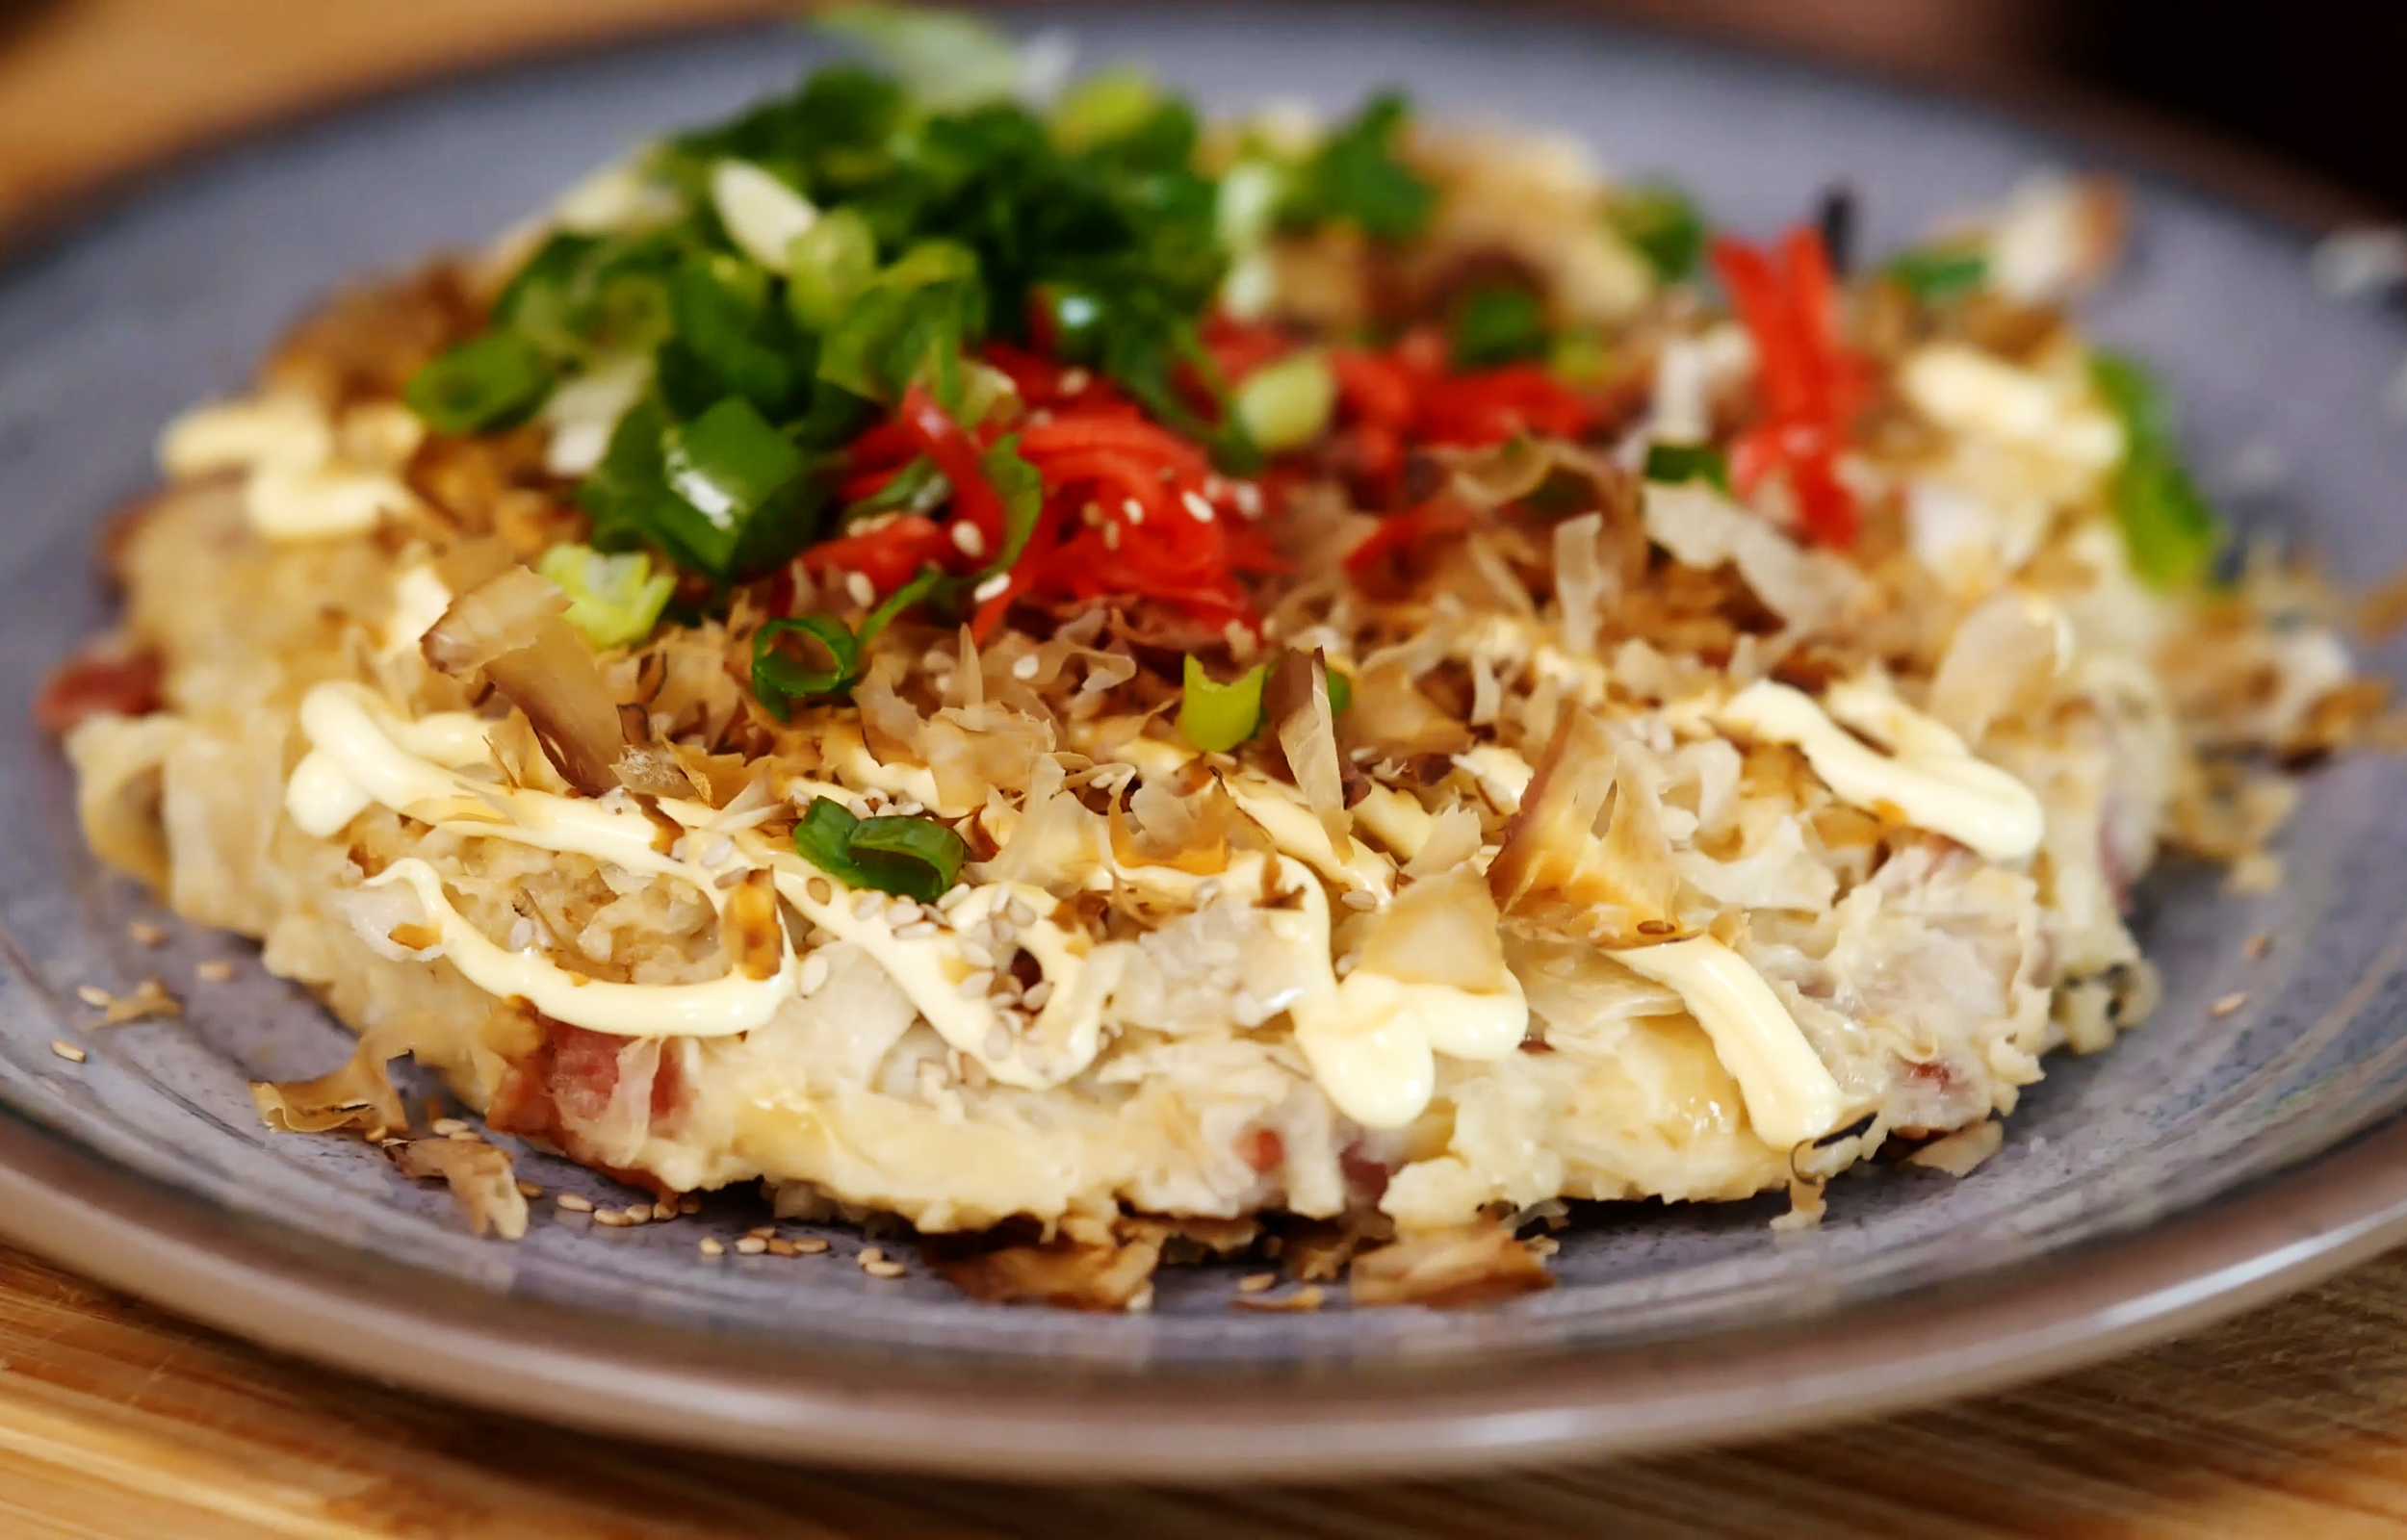 The lovely finished okonomiyaki, ready to devour!